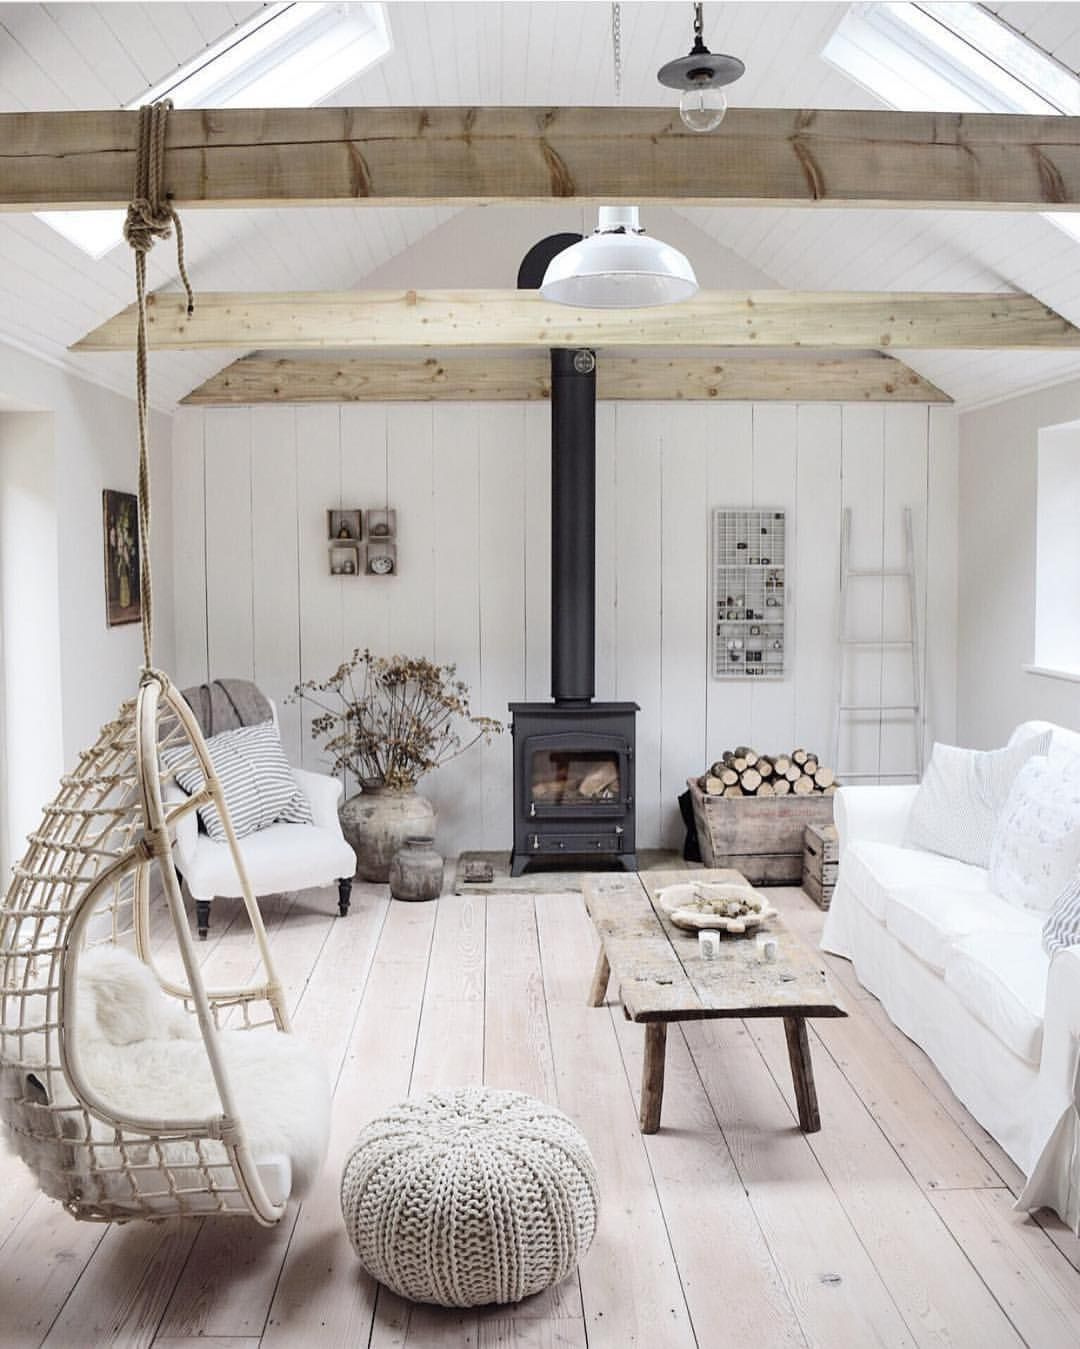 living room, wooden floor, wooden wall, rattan swing, wooden coffee table, white woven ottoman, wooden beams, shite sofa